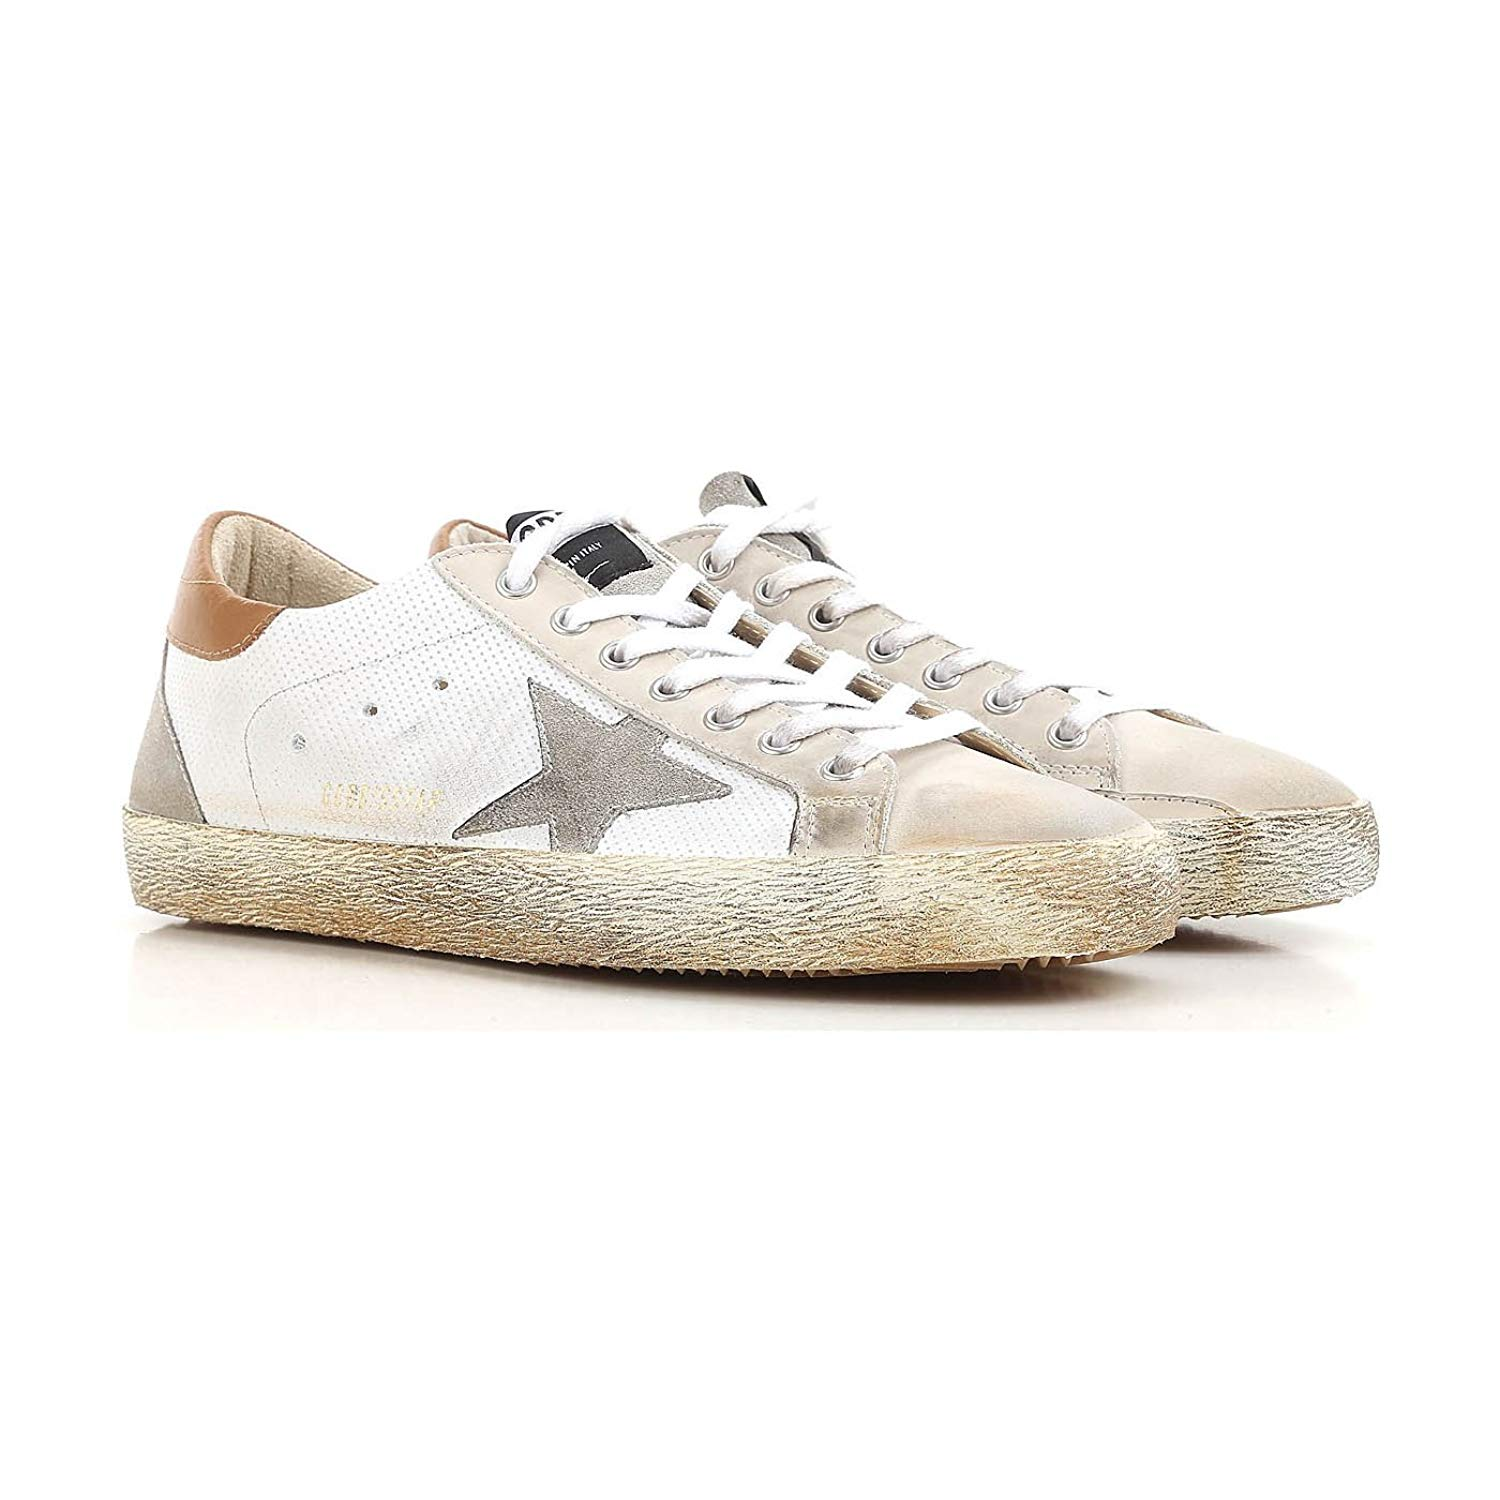 save off e8dd0 d2637 Get Quotations · Golden Goose Deluxe Brand Superstar White Spot Mens  Sneakers G32MS590.E98